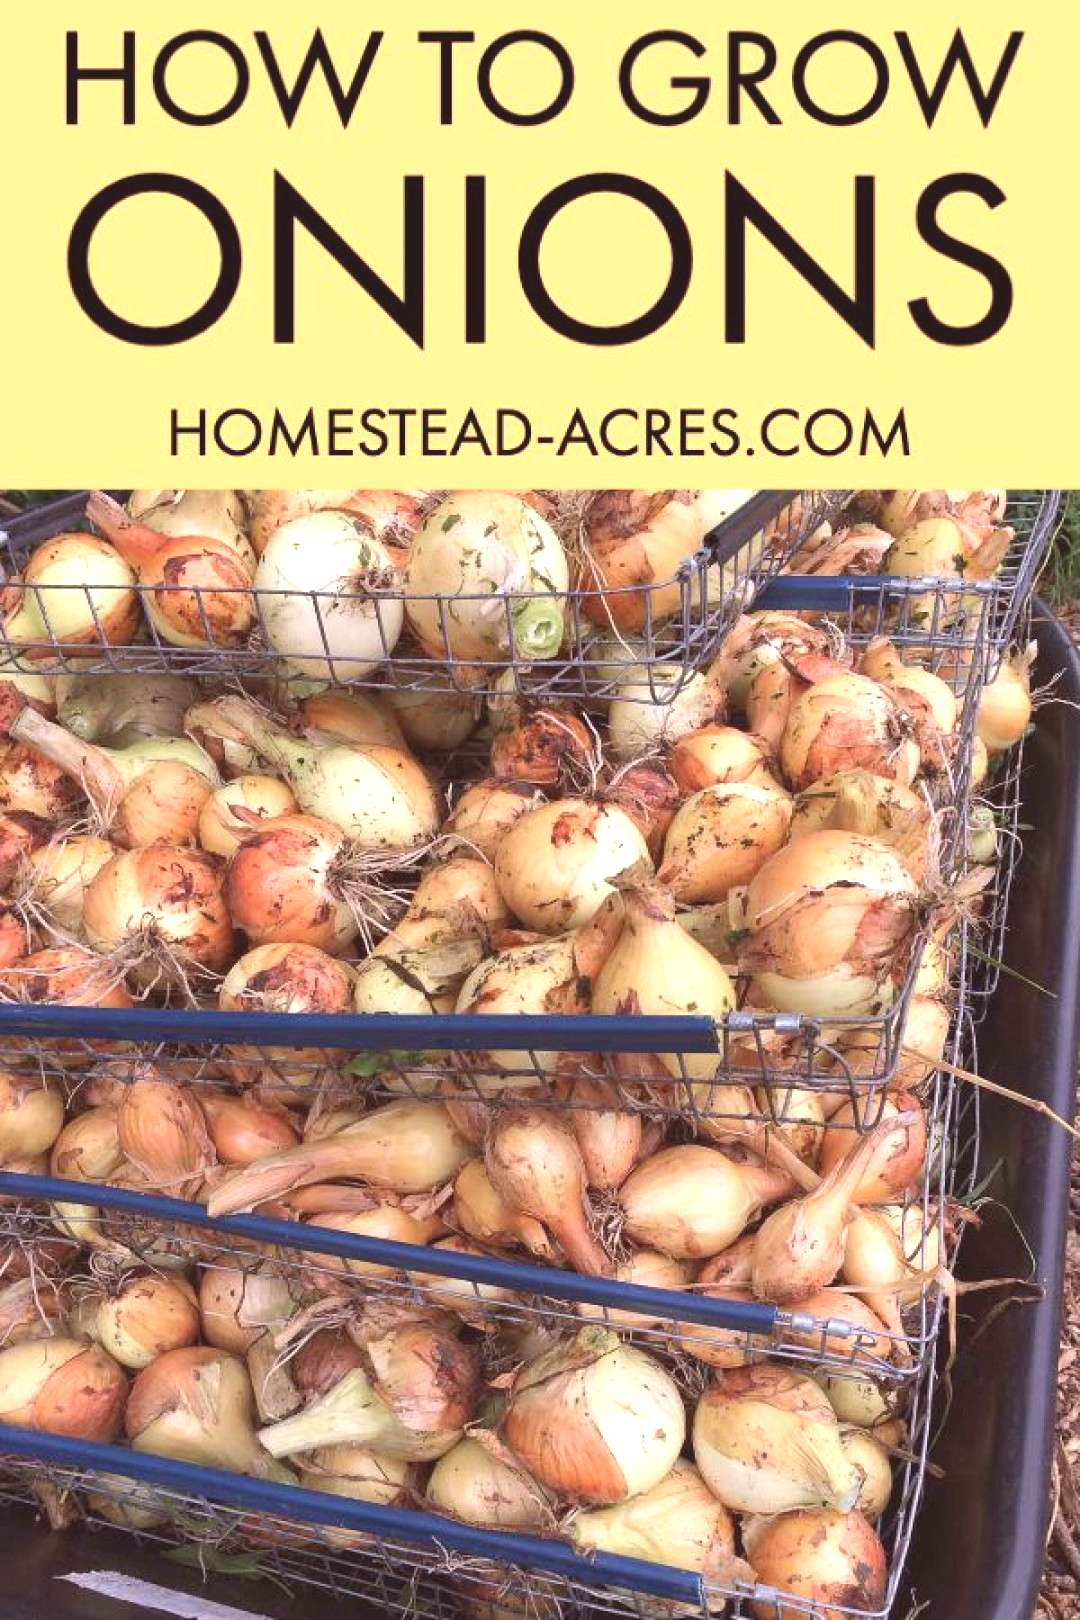 How To Grow Onions How to grow onions in your backyard garden. Yes you can easily grow lots of onio